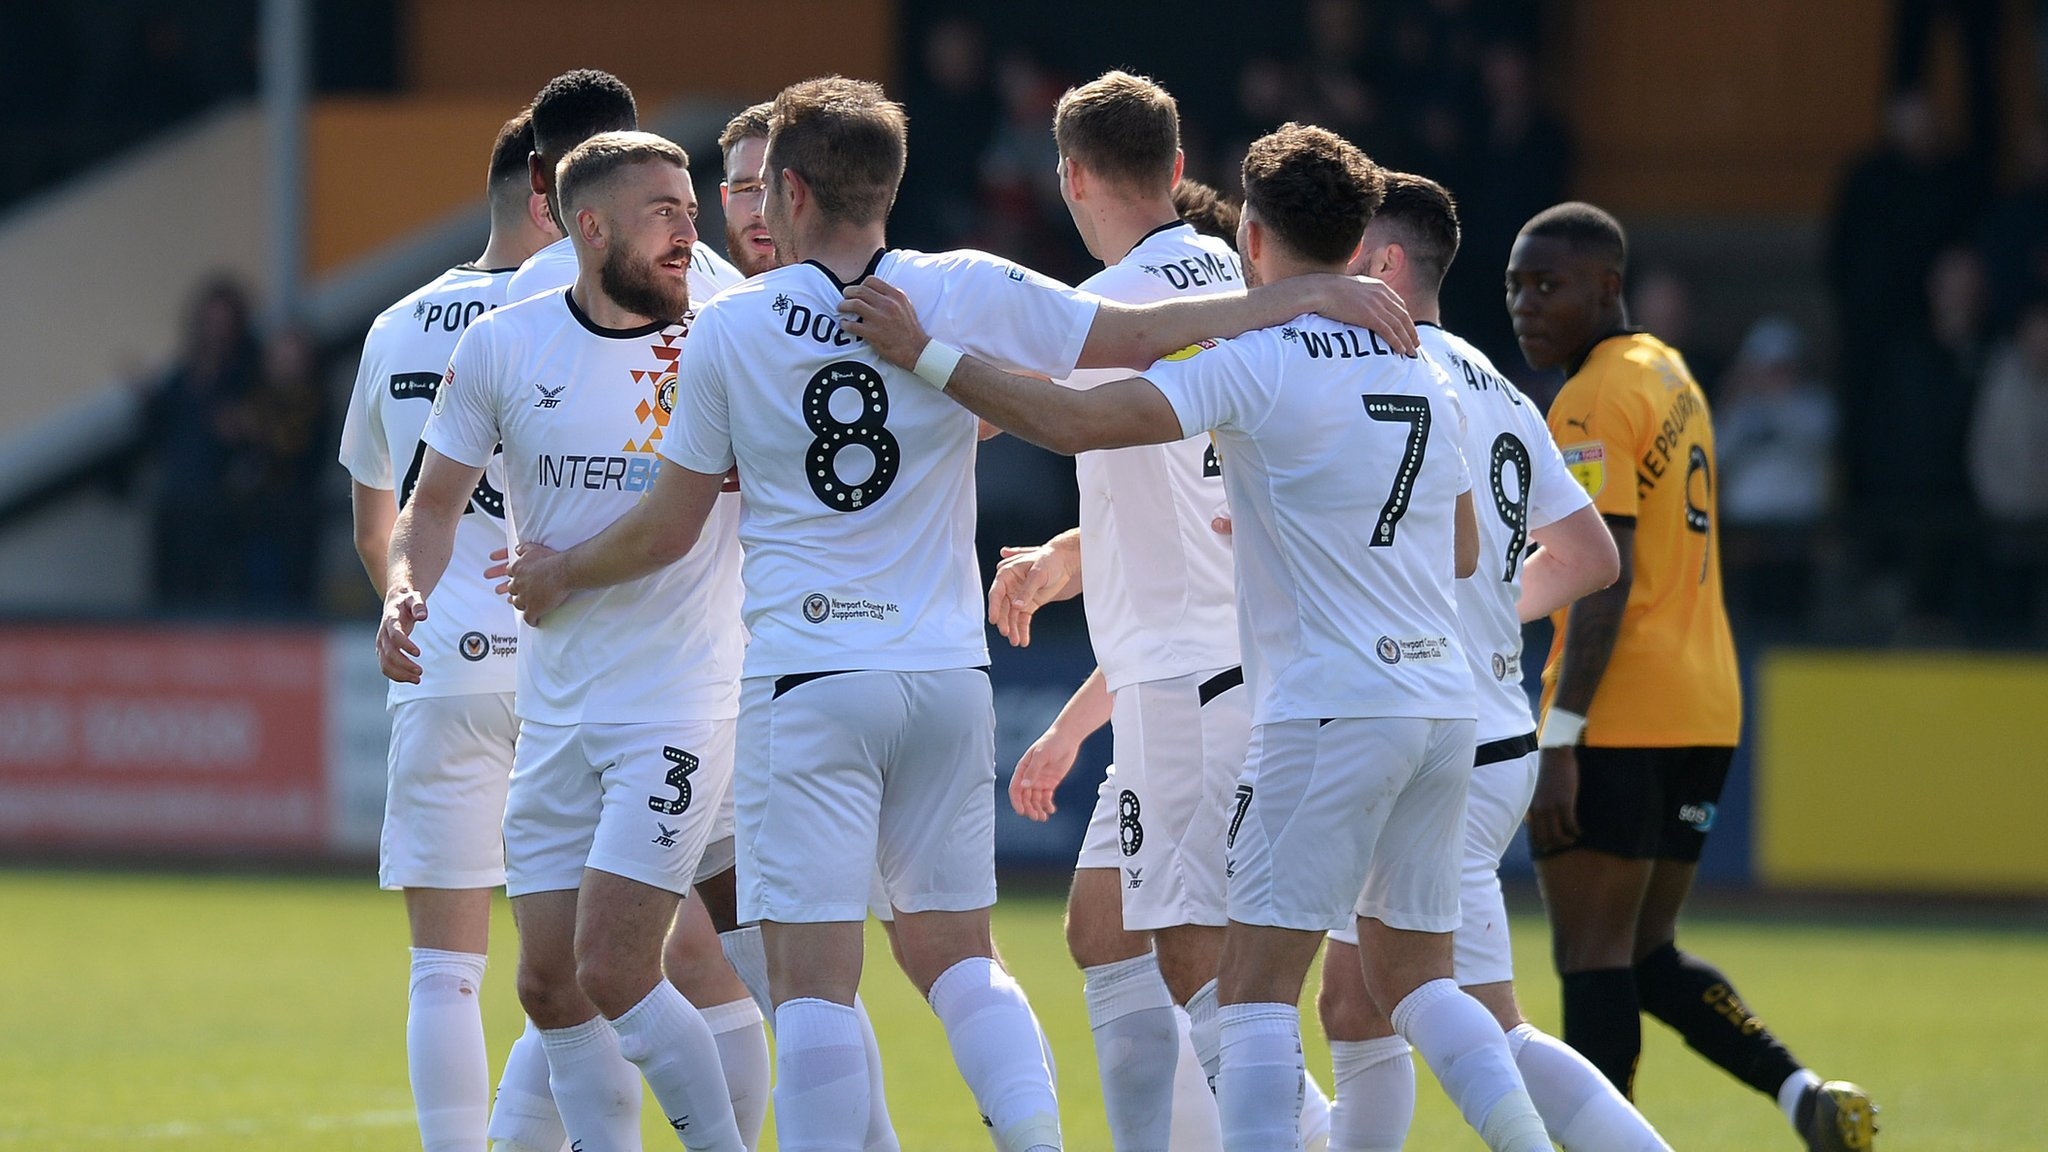 Cambridge United 0-3 Newport County: Exiles remain in play-off hunt